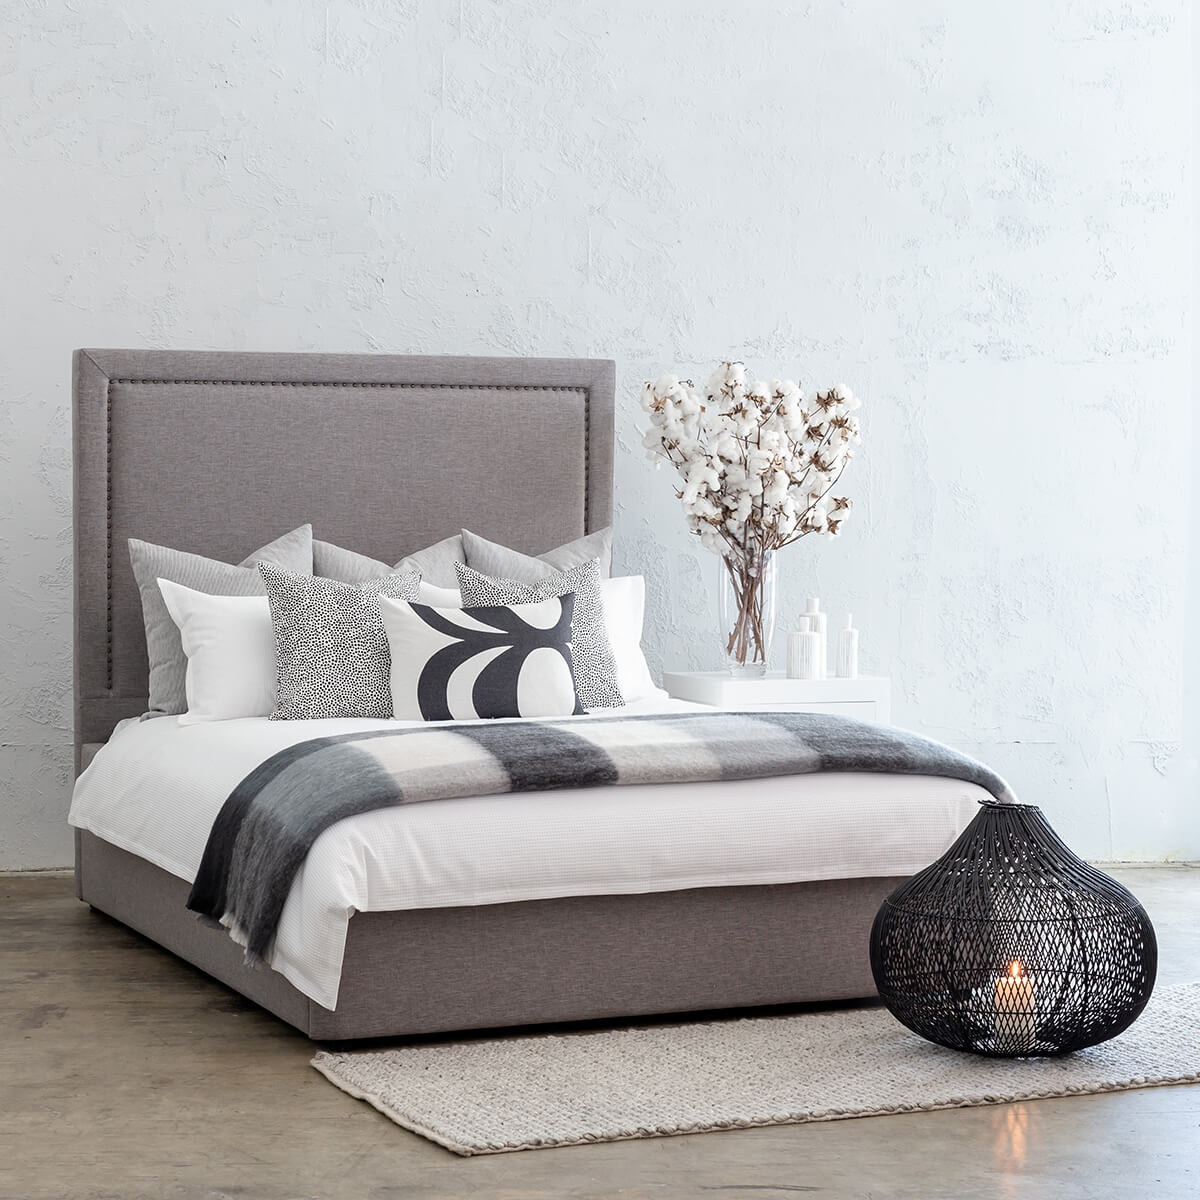 MARLE BED WITH STUDDED SQUARE FRAME   |  GREY LINEN  |  QUEEN SIZE BED